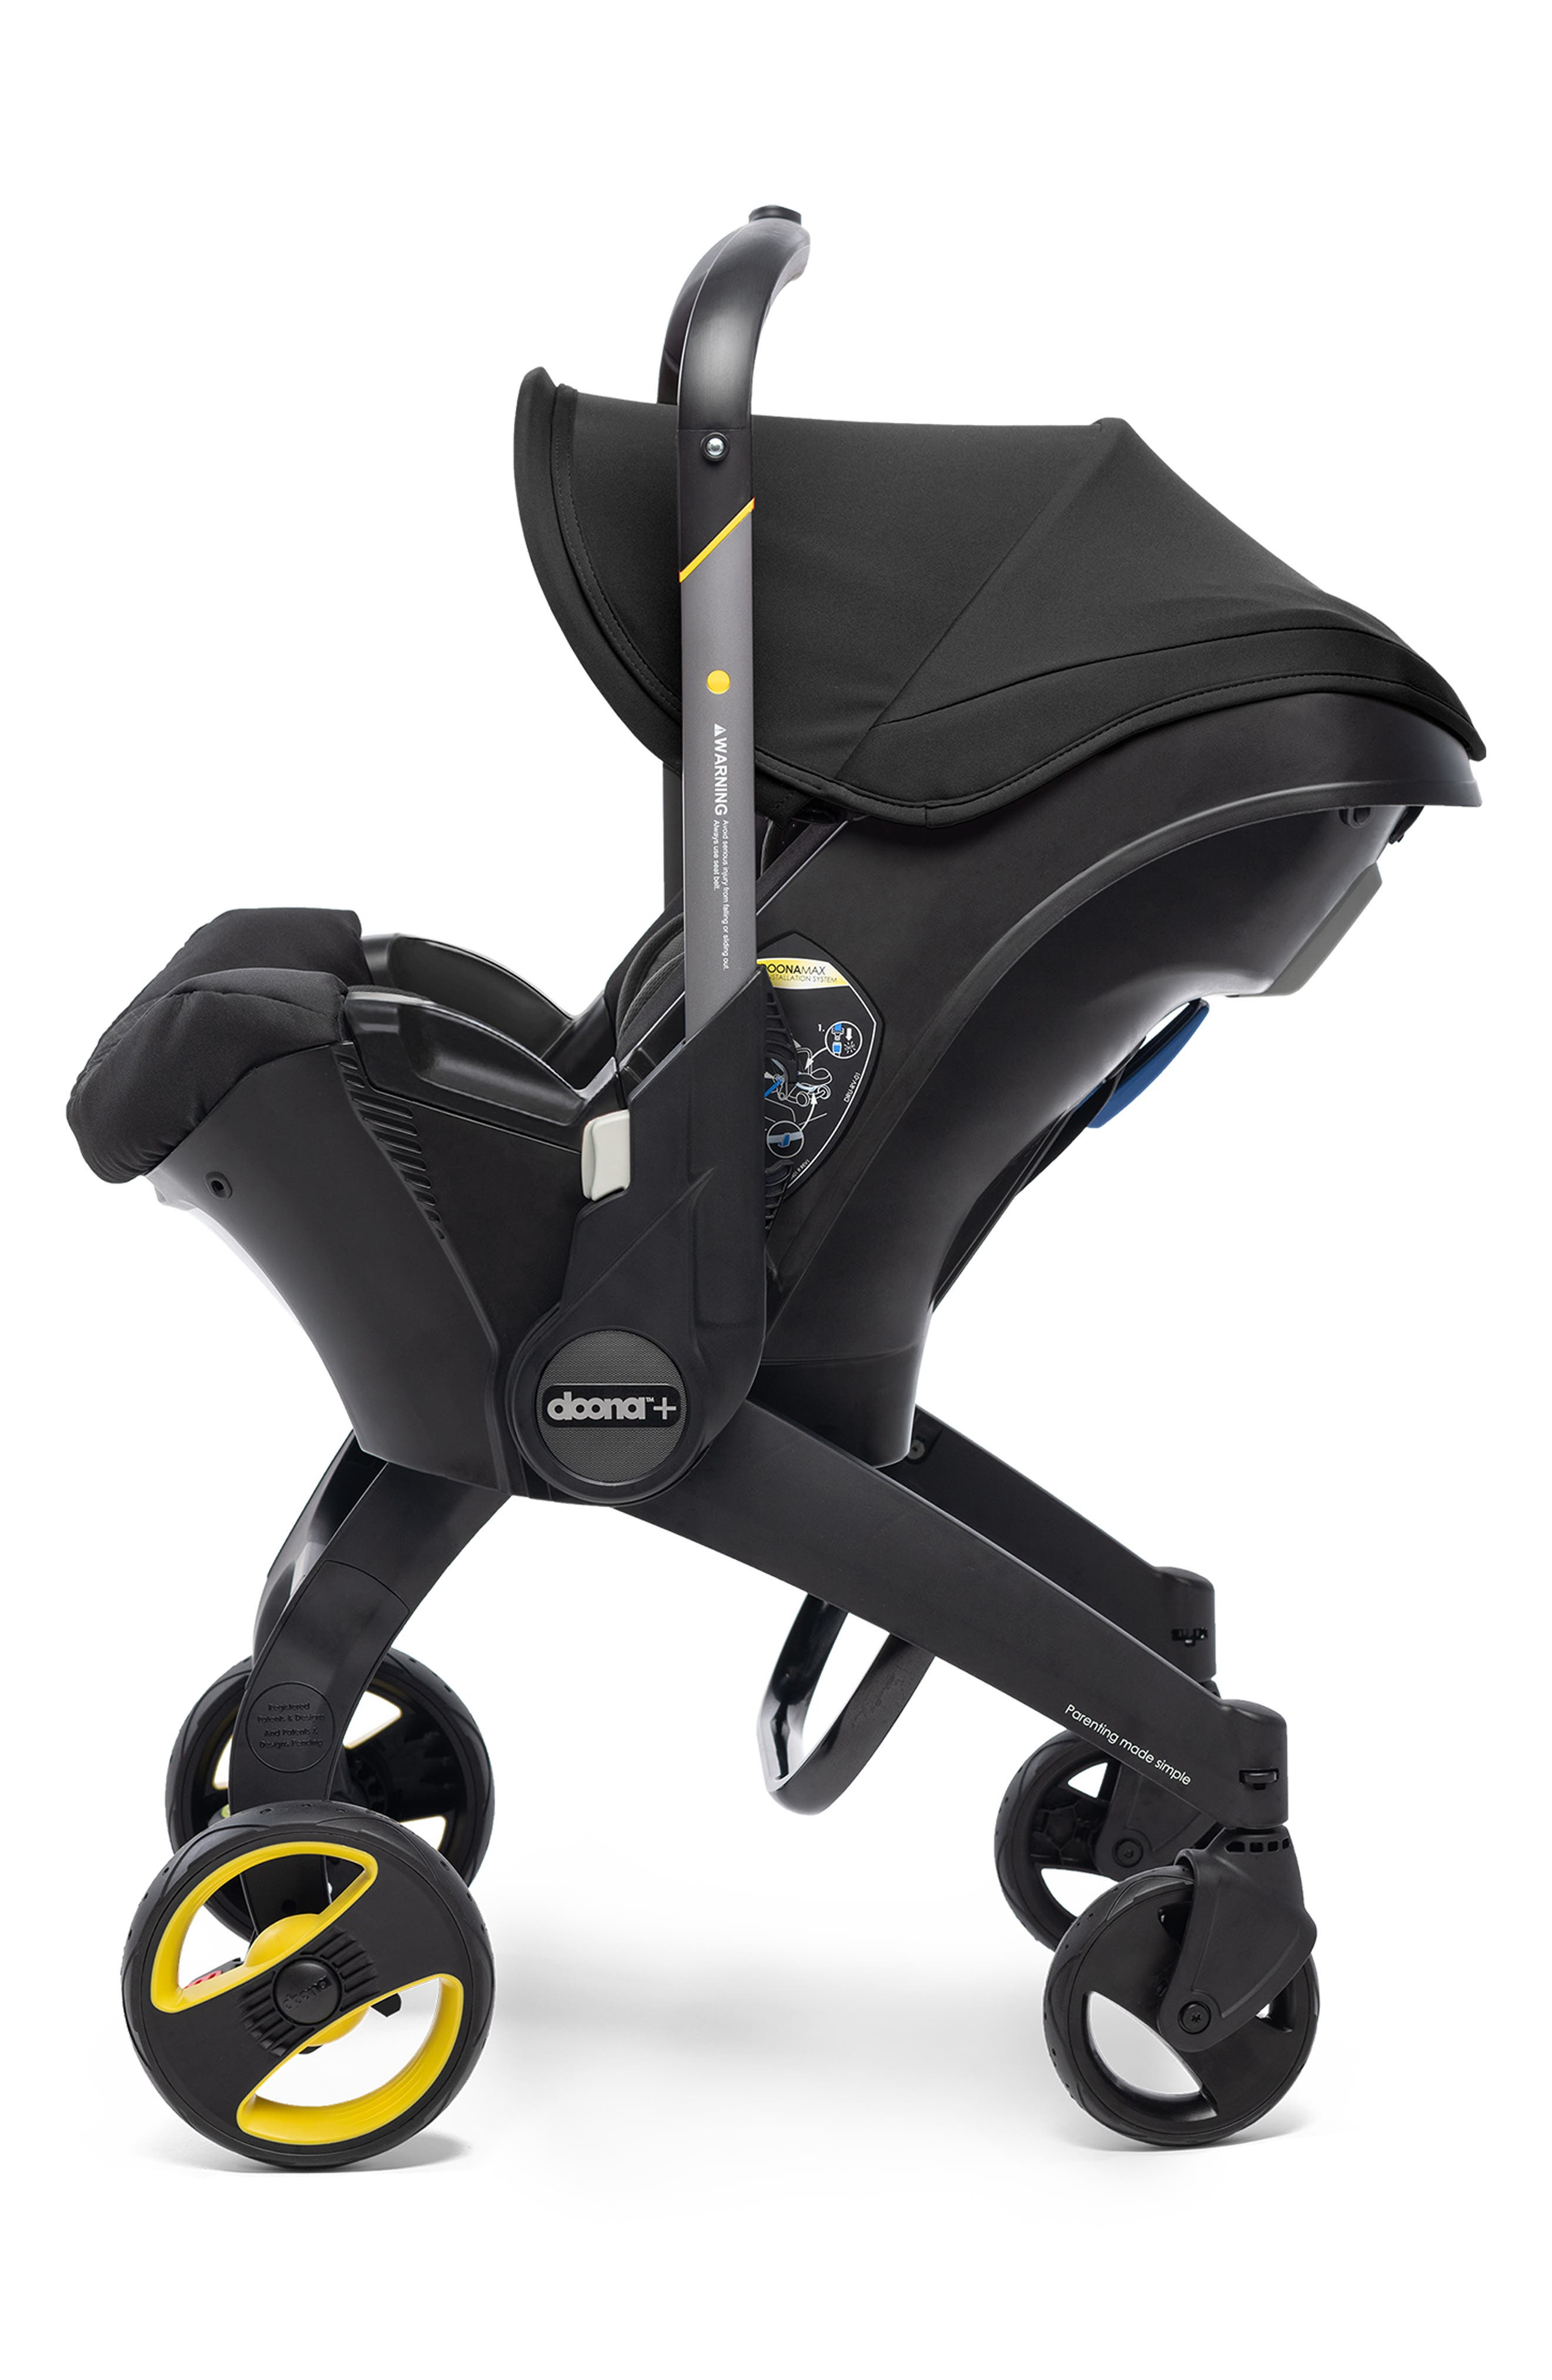 Convertible Infant Car Seat/Compact Stroller System with Base,                             Alternate thumbnail 6, color,                             BLACK/NIGHT